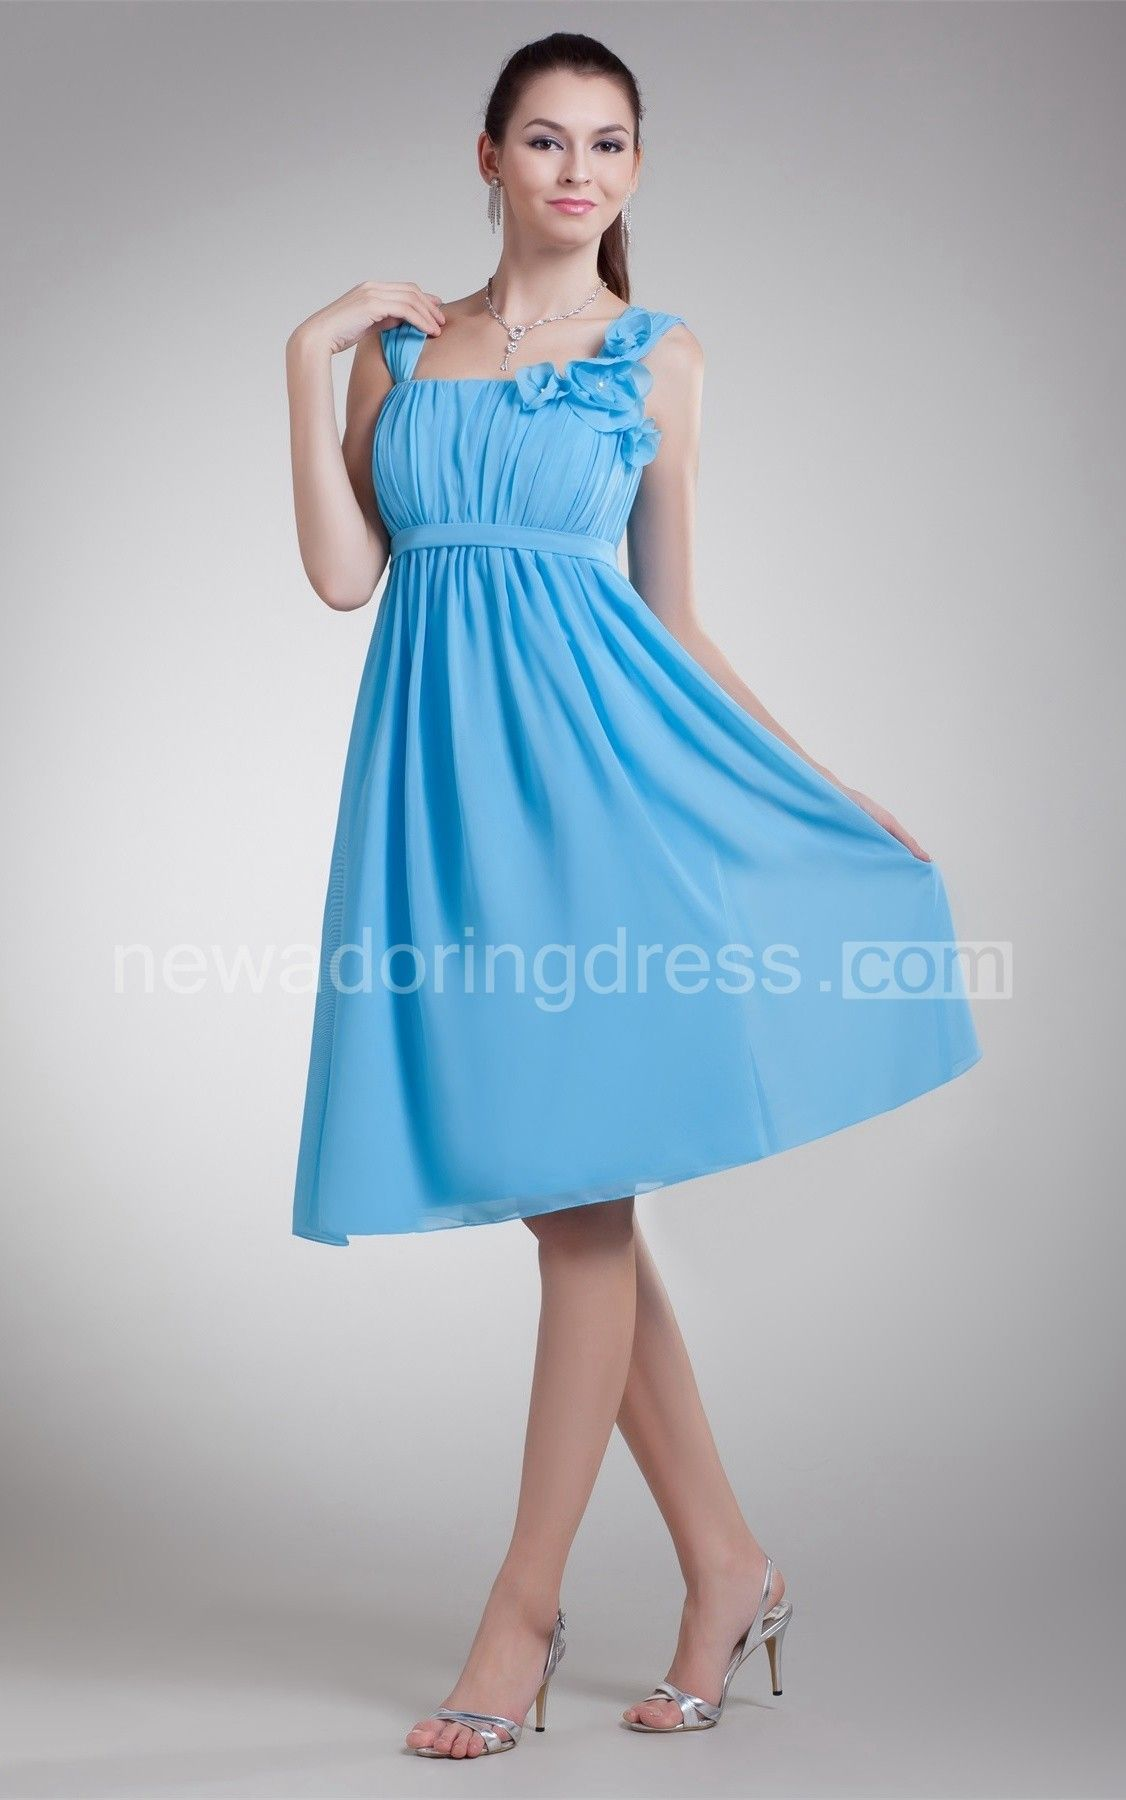 Strapped Chiffon Knee-Length Dress with Flower and Pleats ...